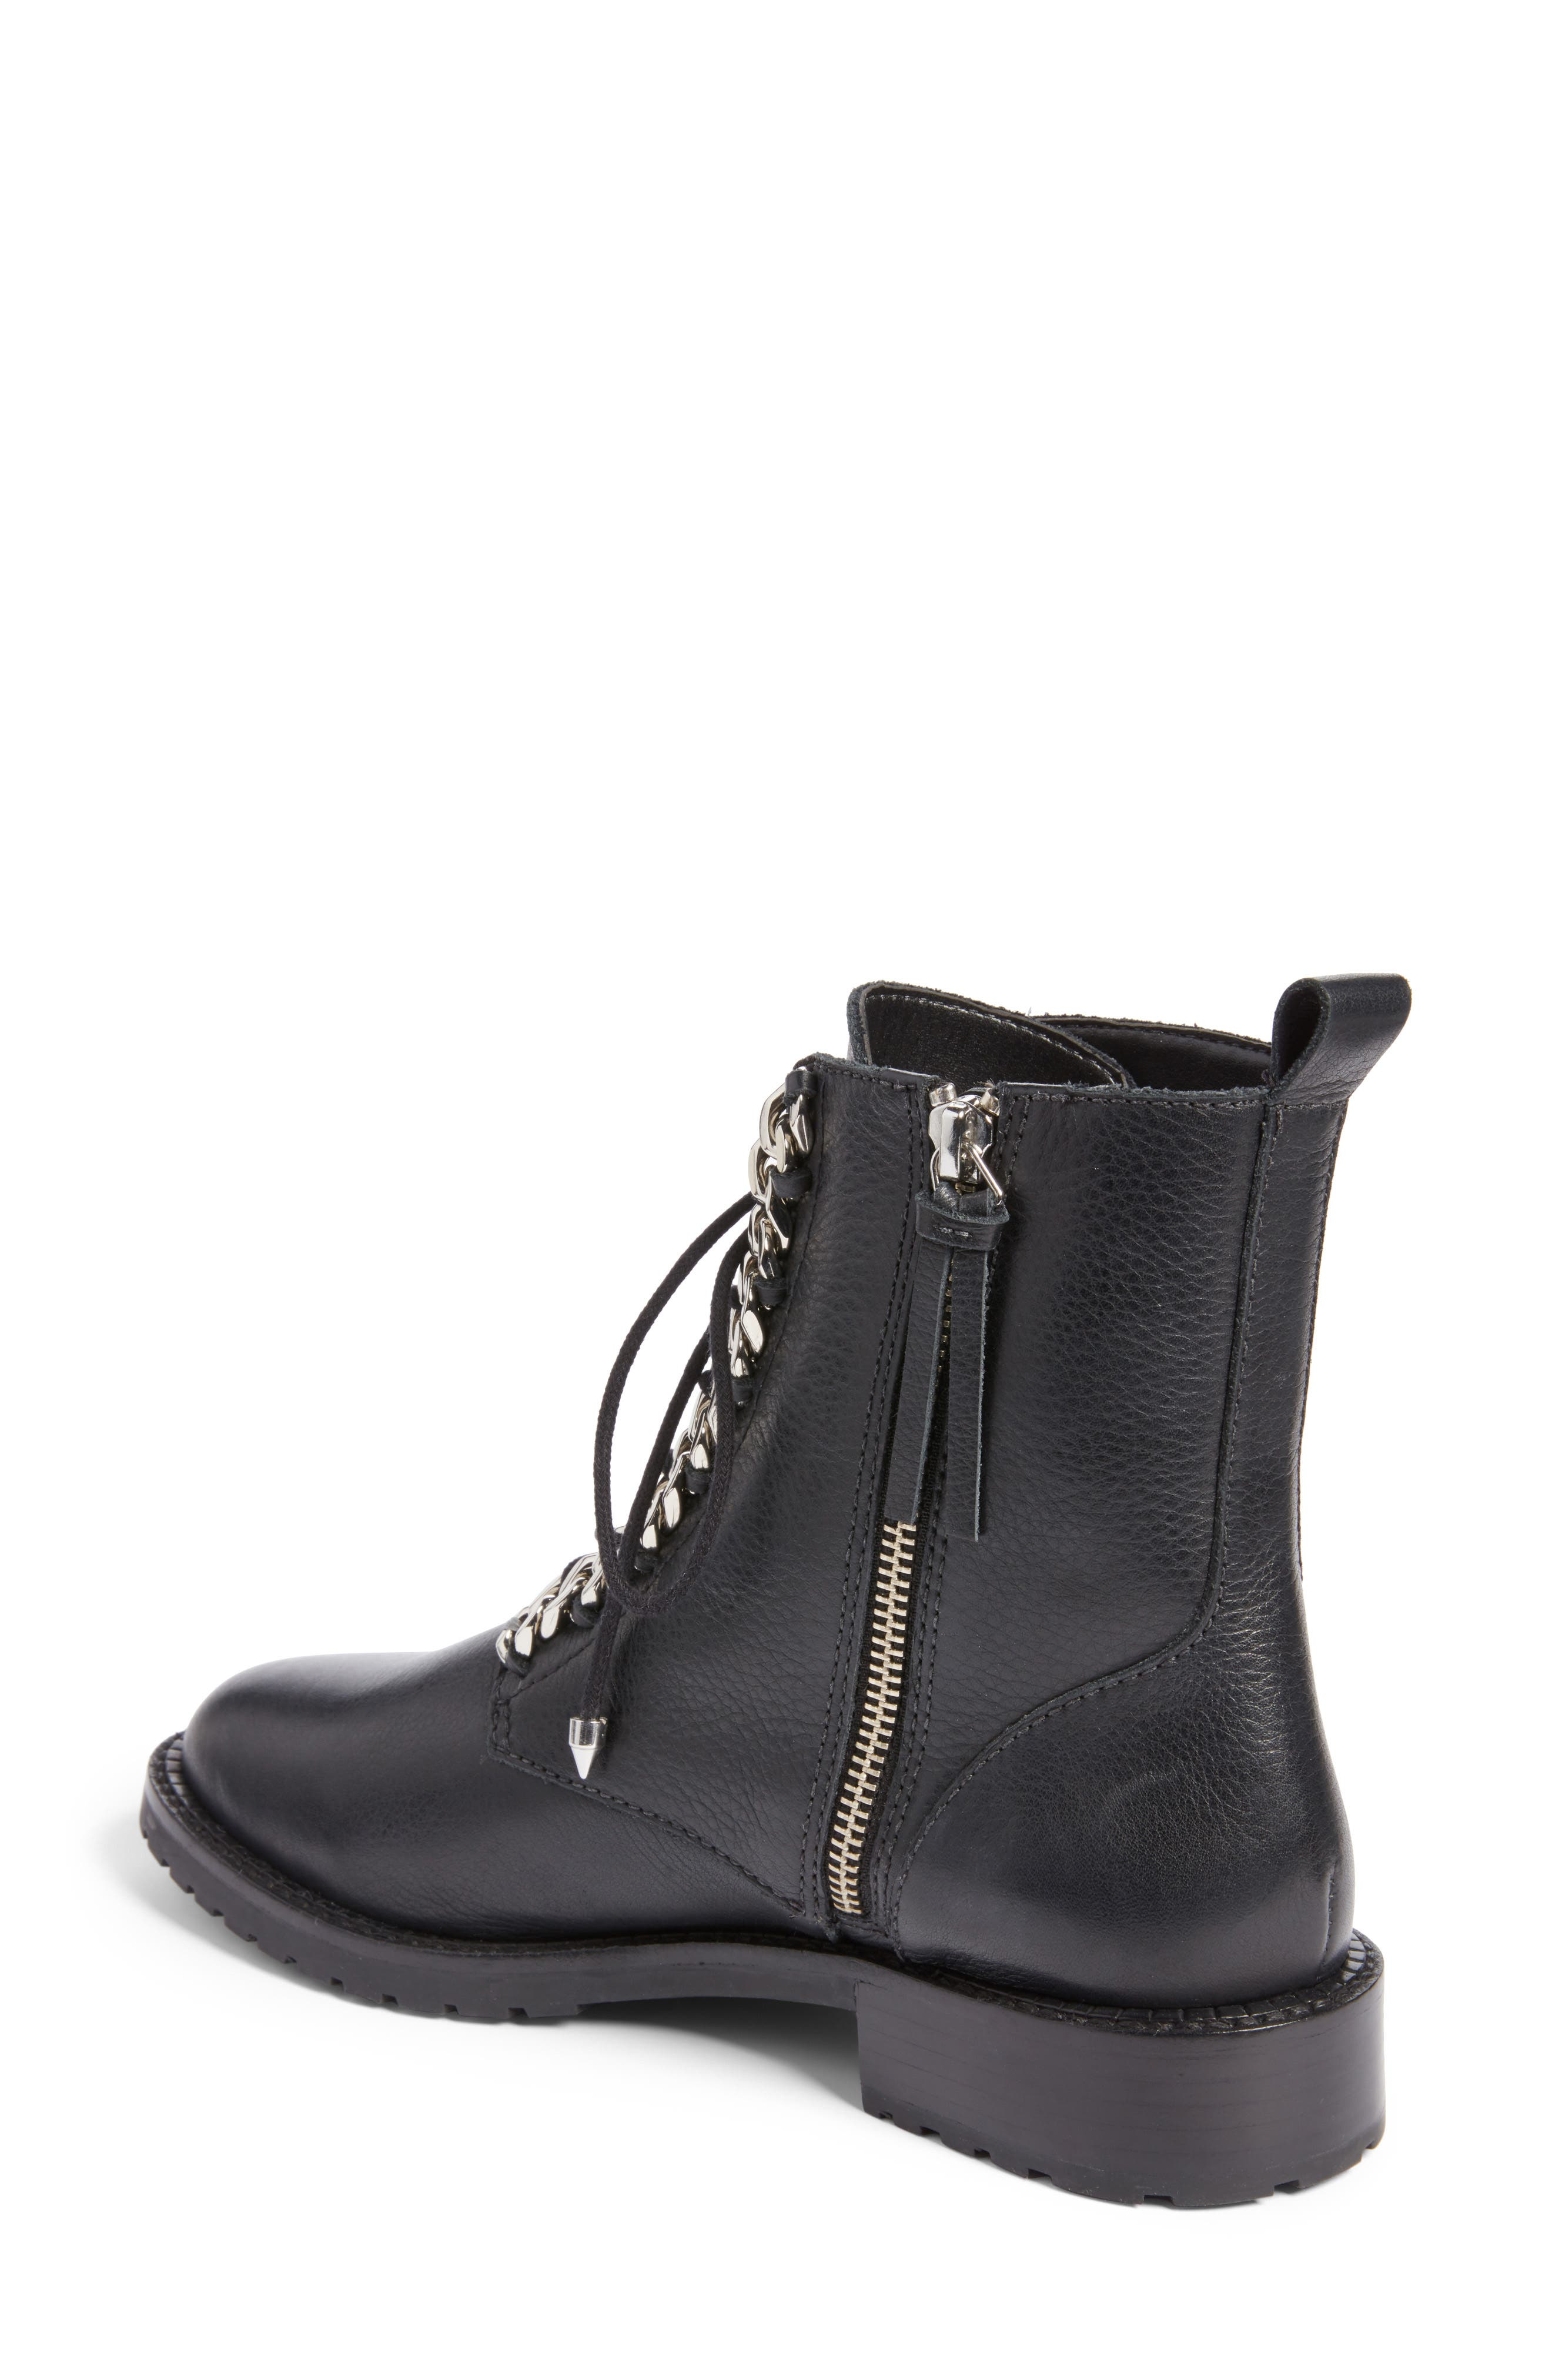 Gian Combat Boot,                             Alternate thumbnail 2, color,                             Black Leather